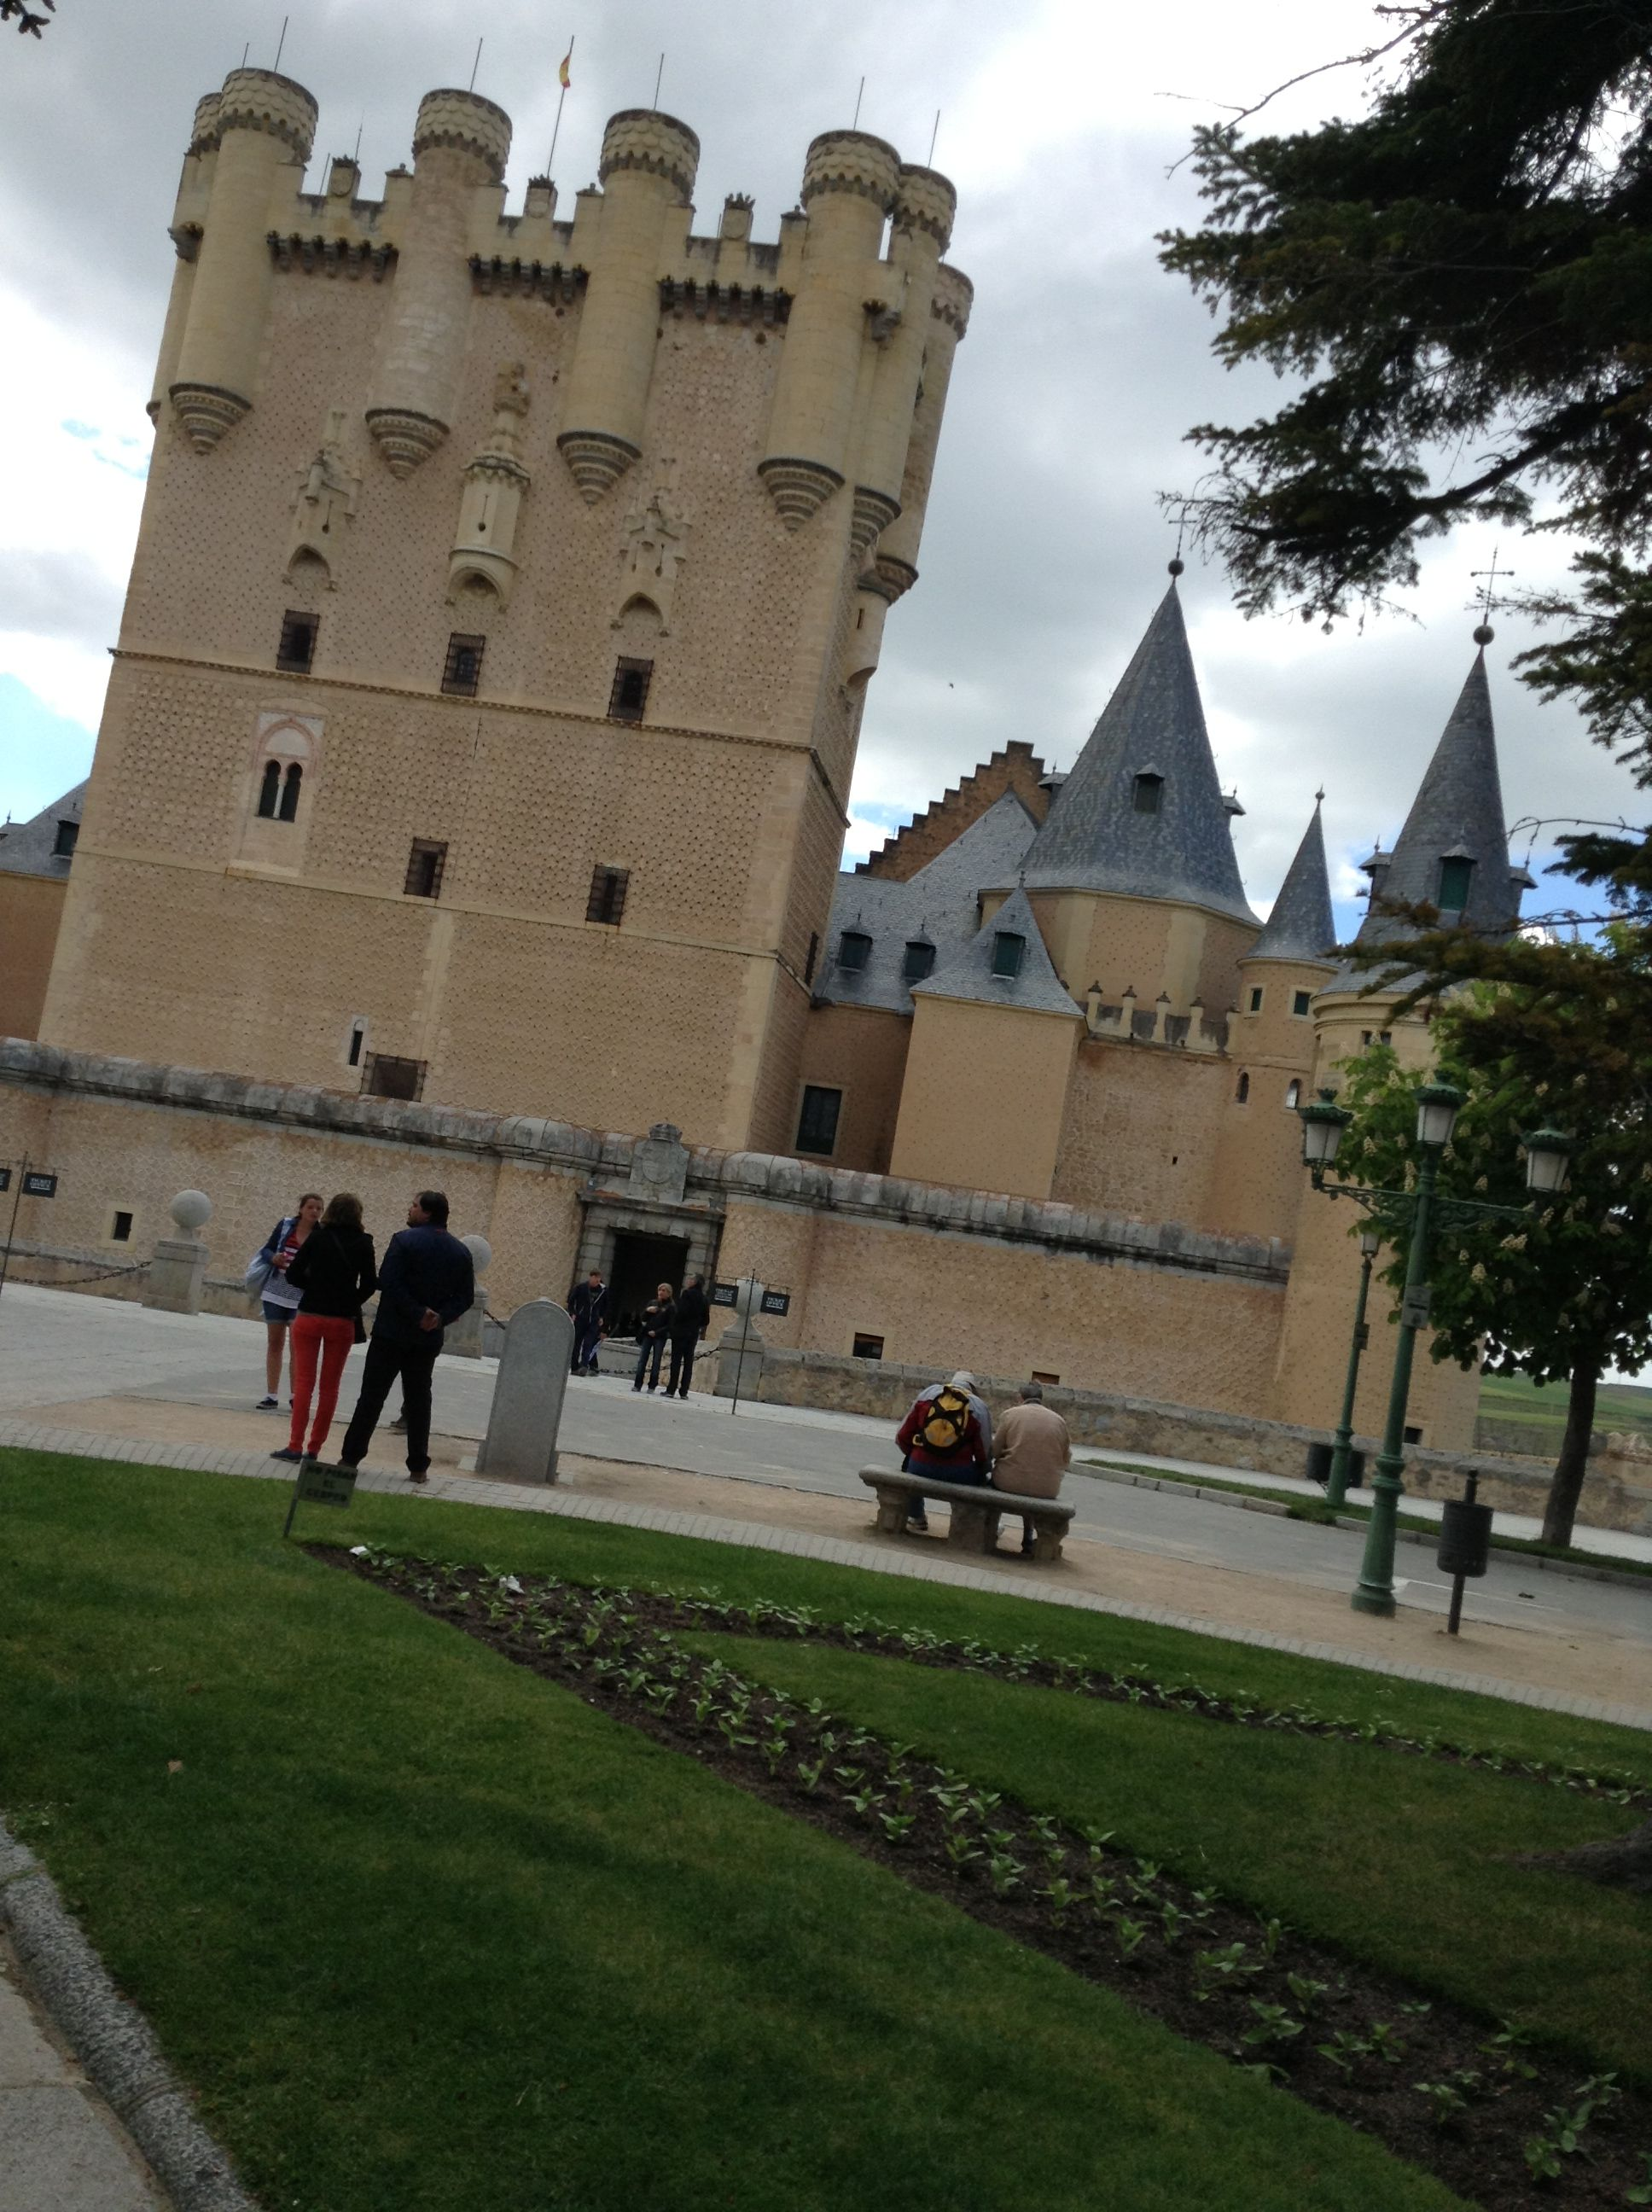 The castle that inspired Sleeping Beauties castle in Segovia. Can you see the resemblance ?